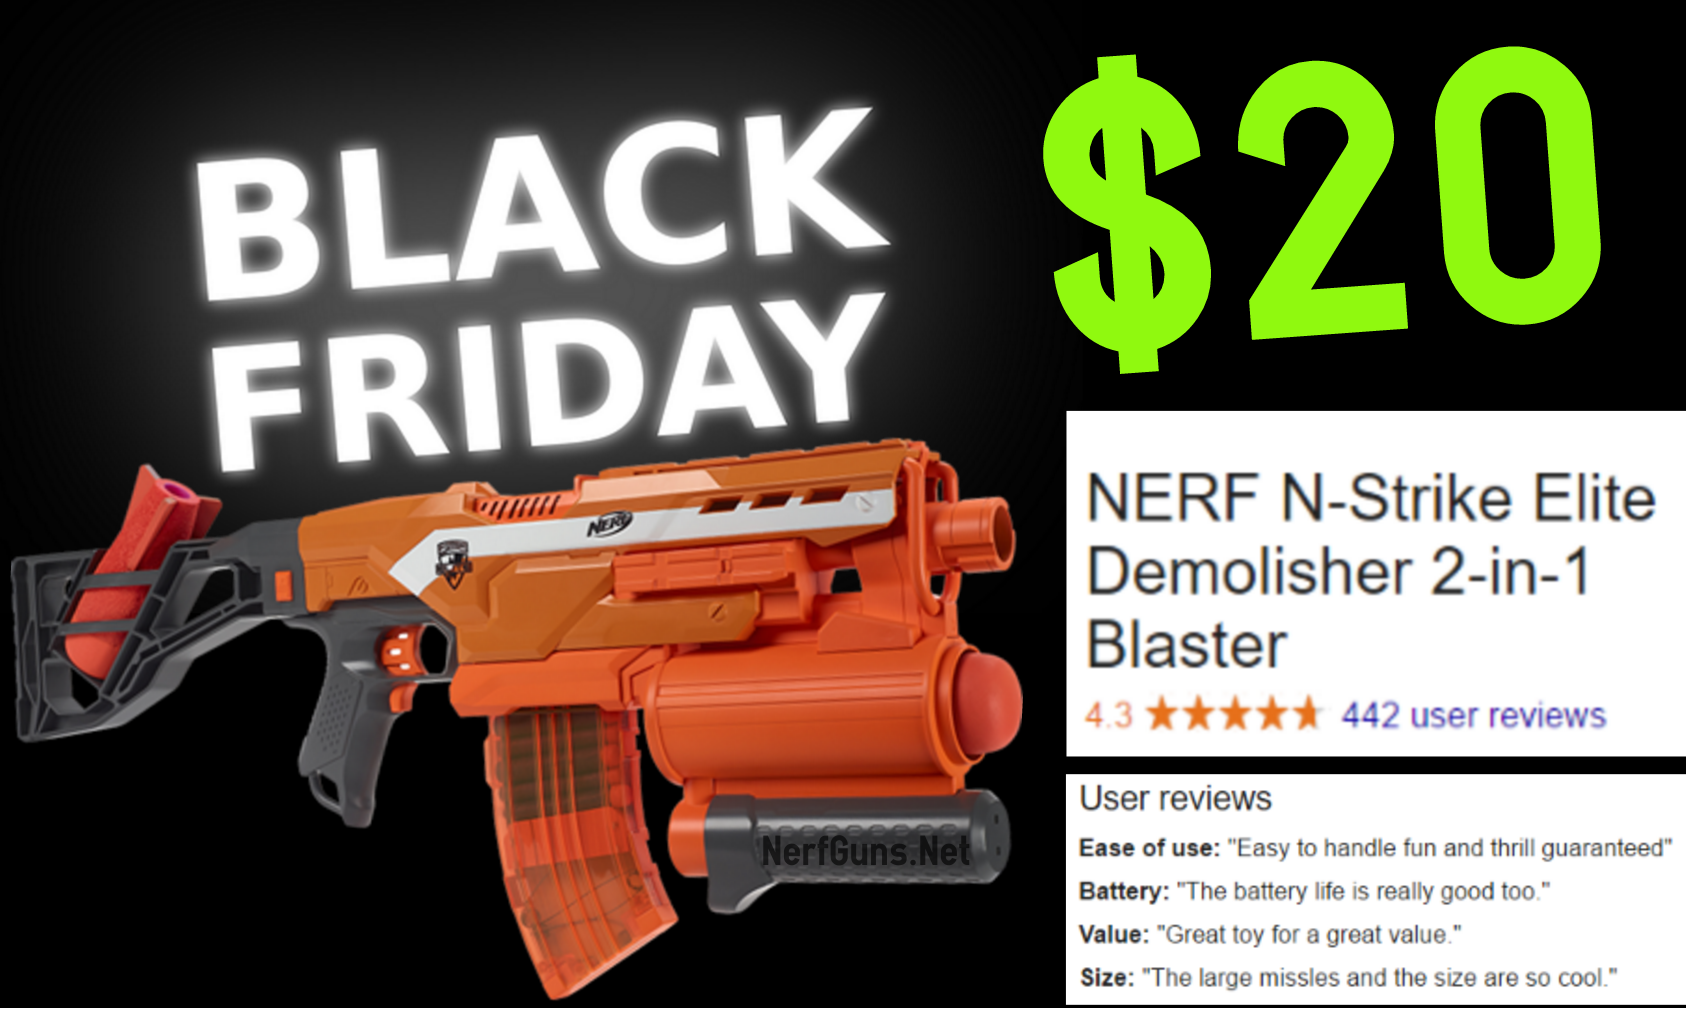 This black friday save 37% on the highly rated nerf gun: the Demolisher.